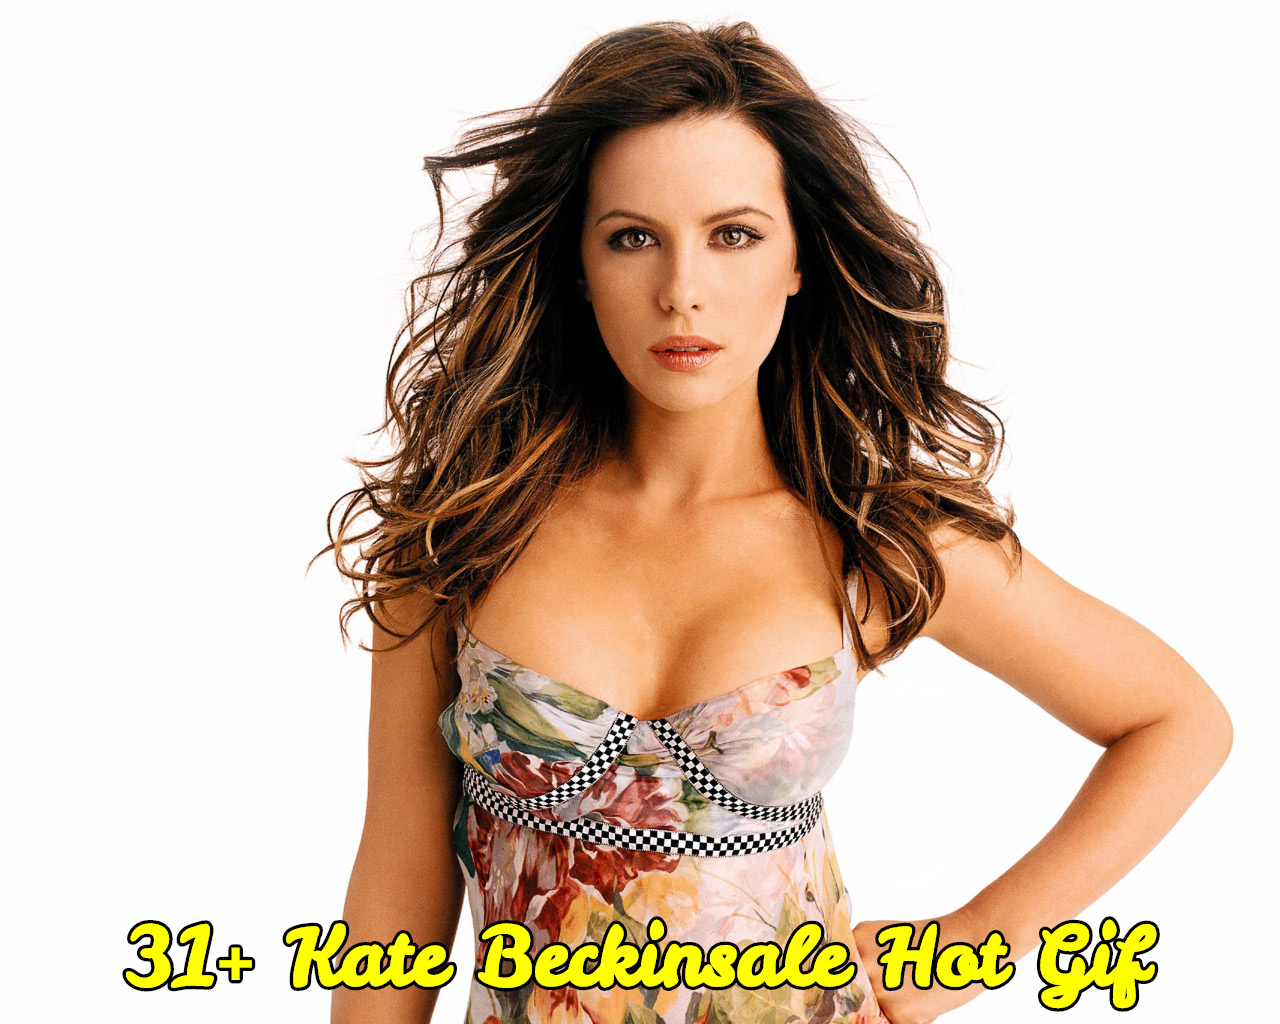 31 Hot Gif Of Kate Beckinsale Are Paradise On Earth Geeks On Coffee